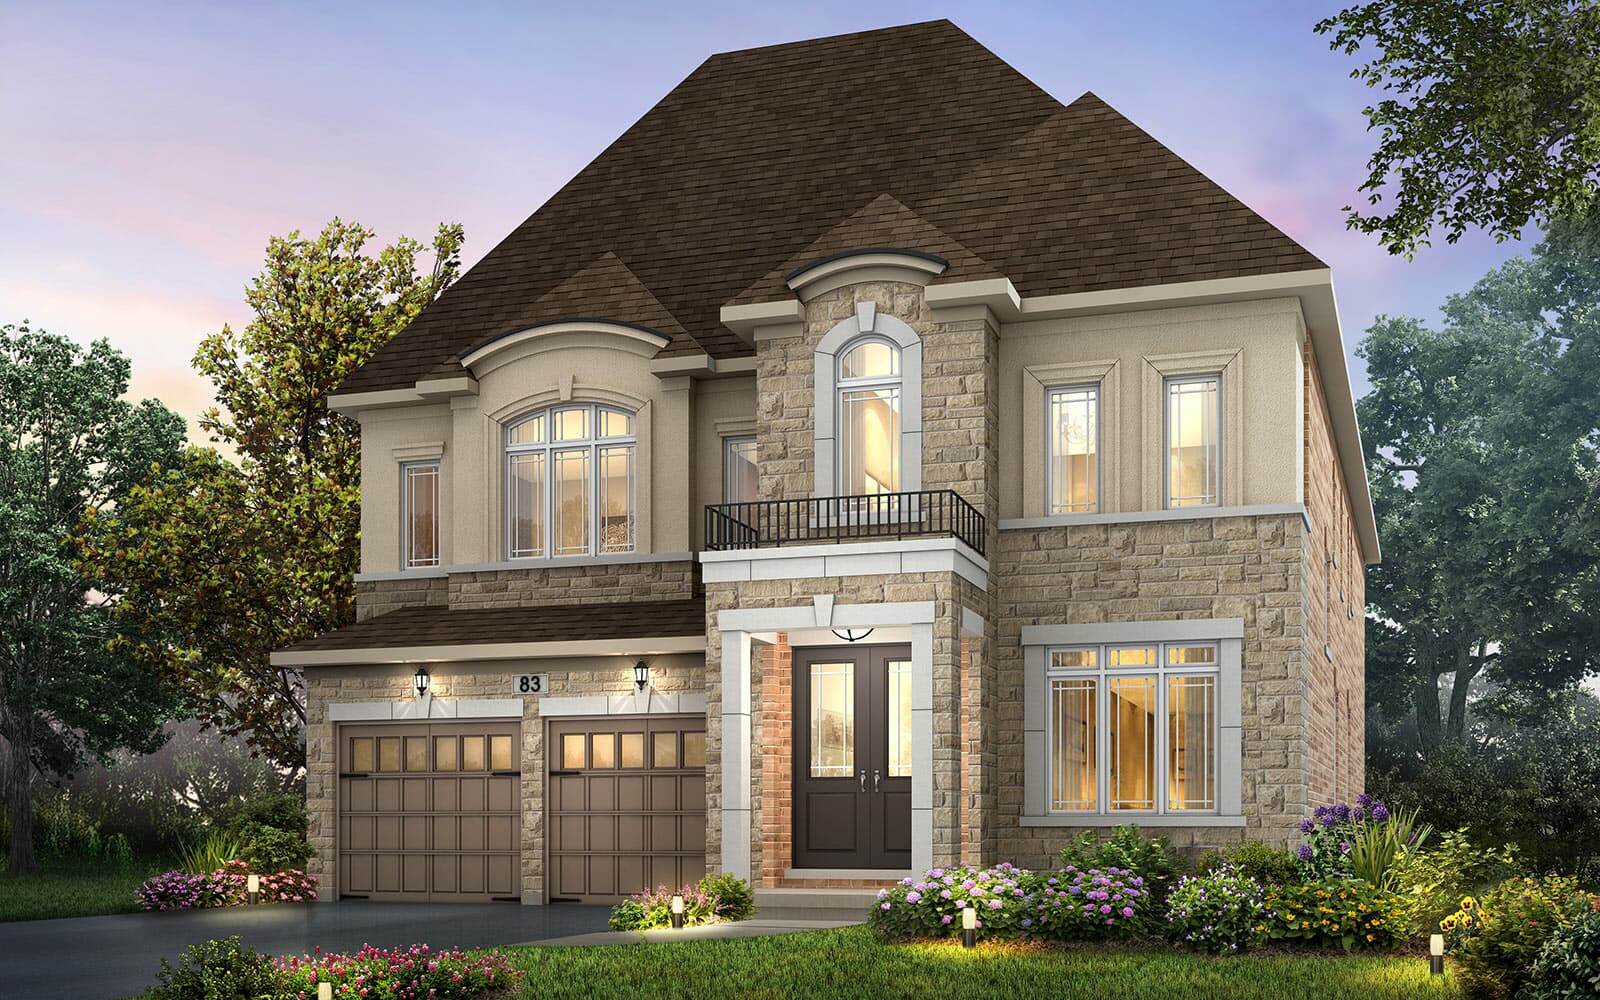 Exterior Palgrave Style D |Palgrave at Pathways in Caledon East| Caledon, ON | Brookfield Residential